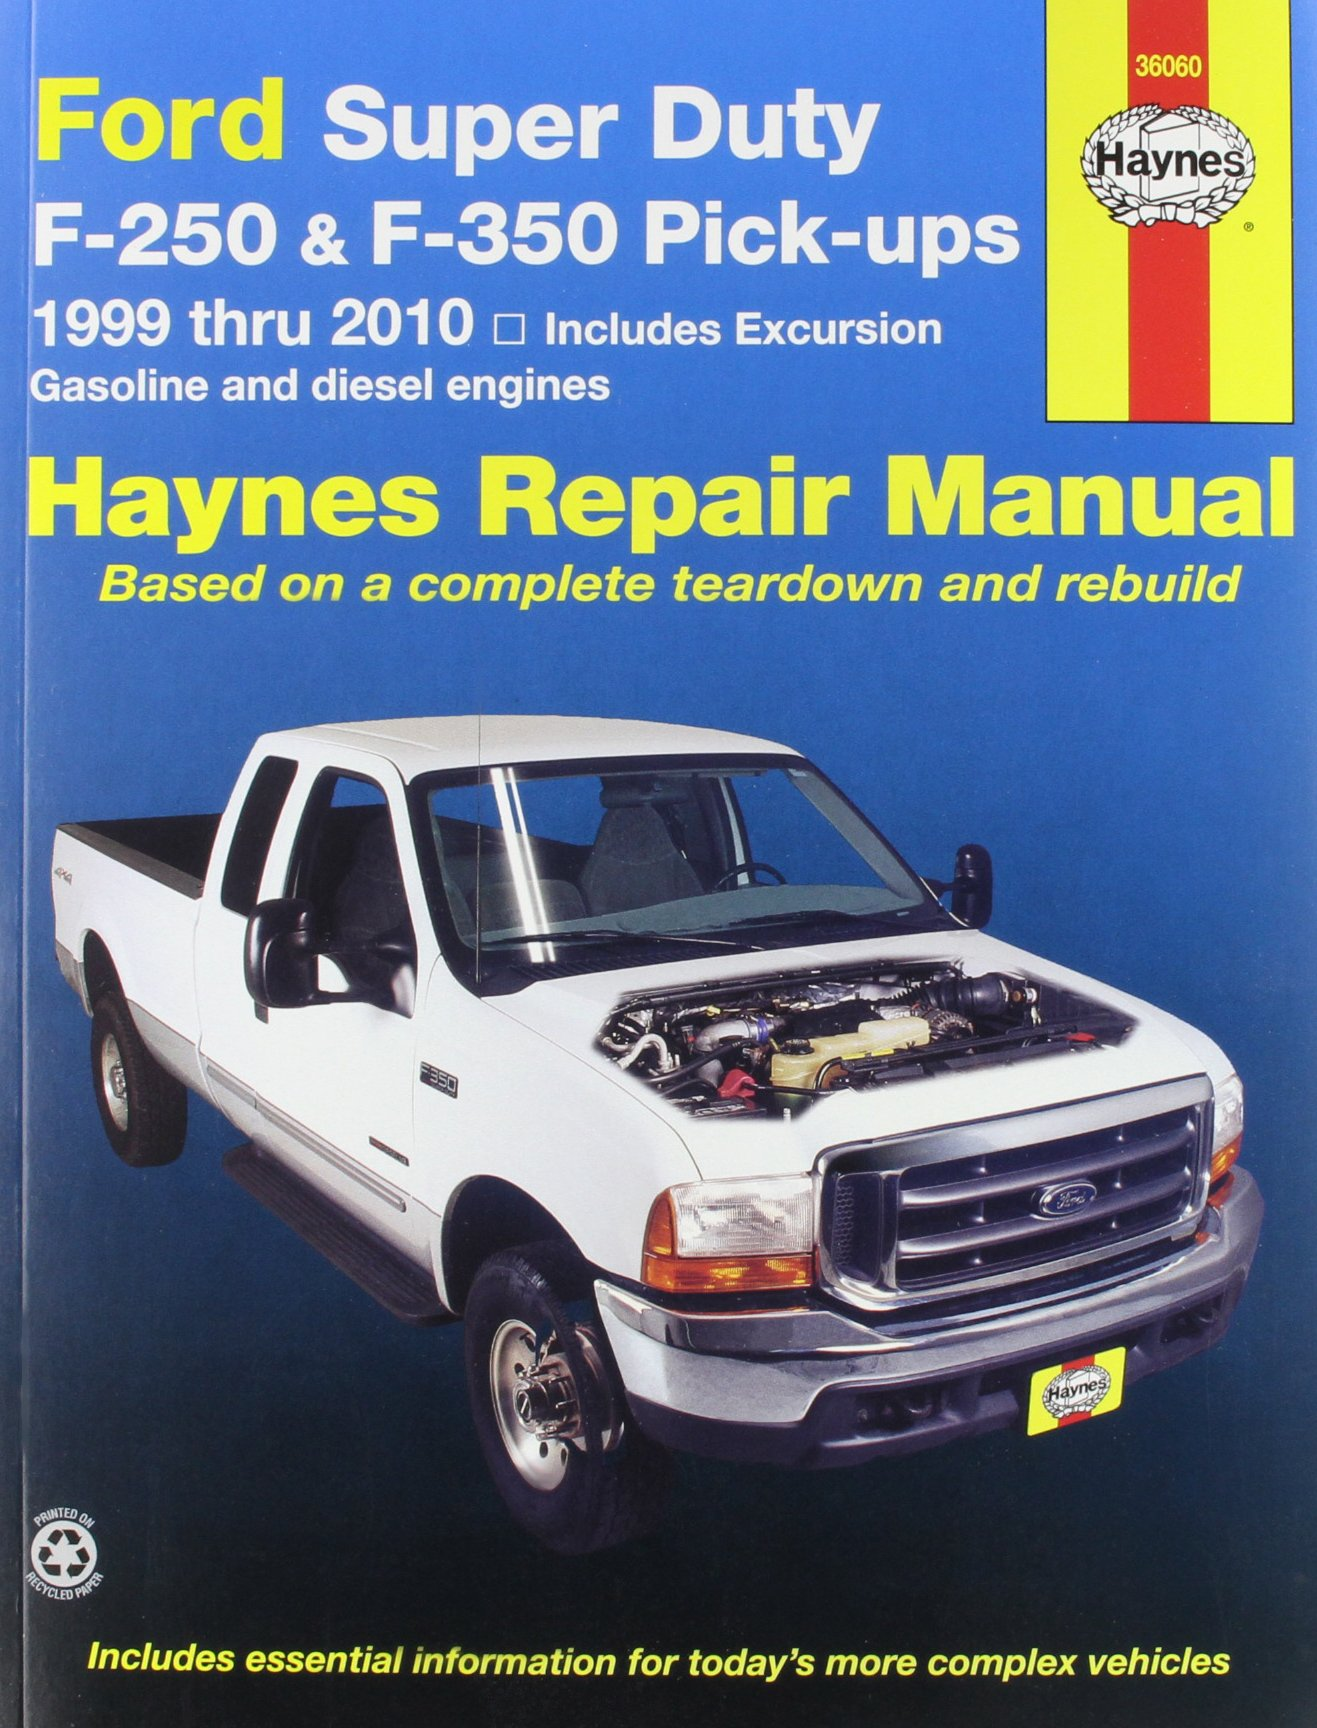 Haynes Ford Super Duty P U and Excursion 99 02 Manual